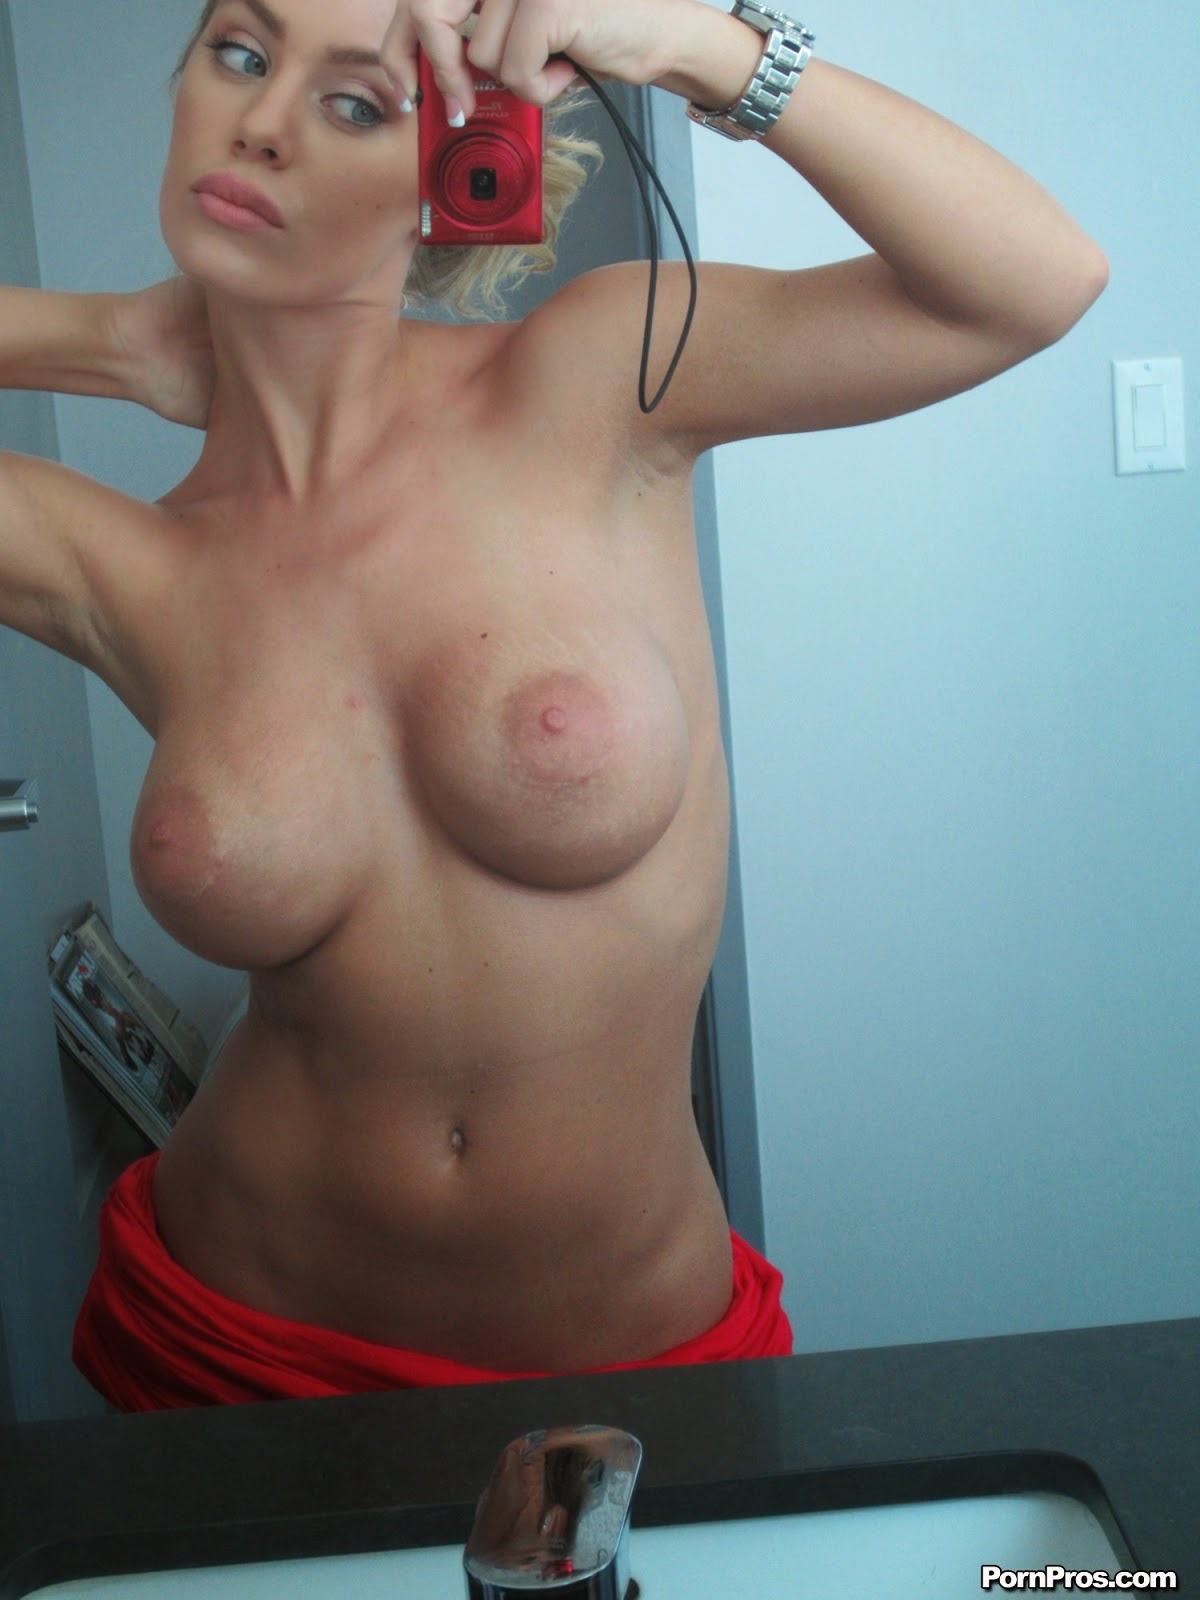 Nicole Aniston Nude Self Shots